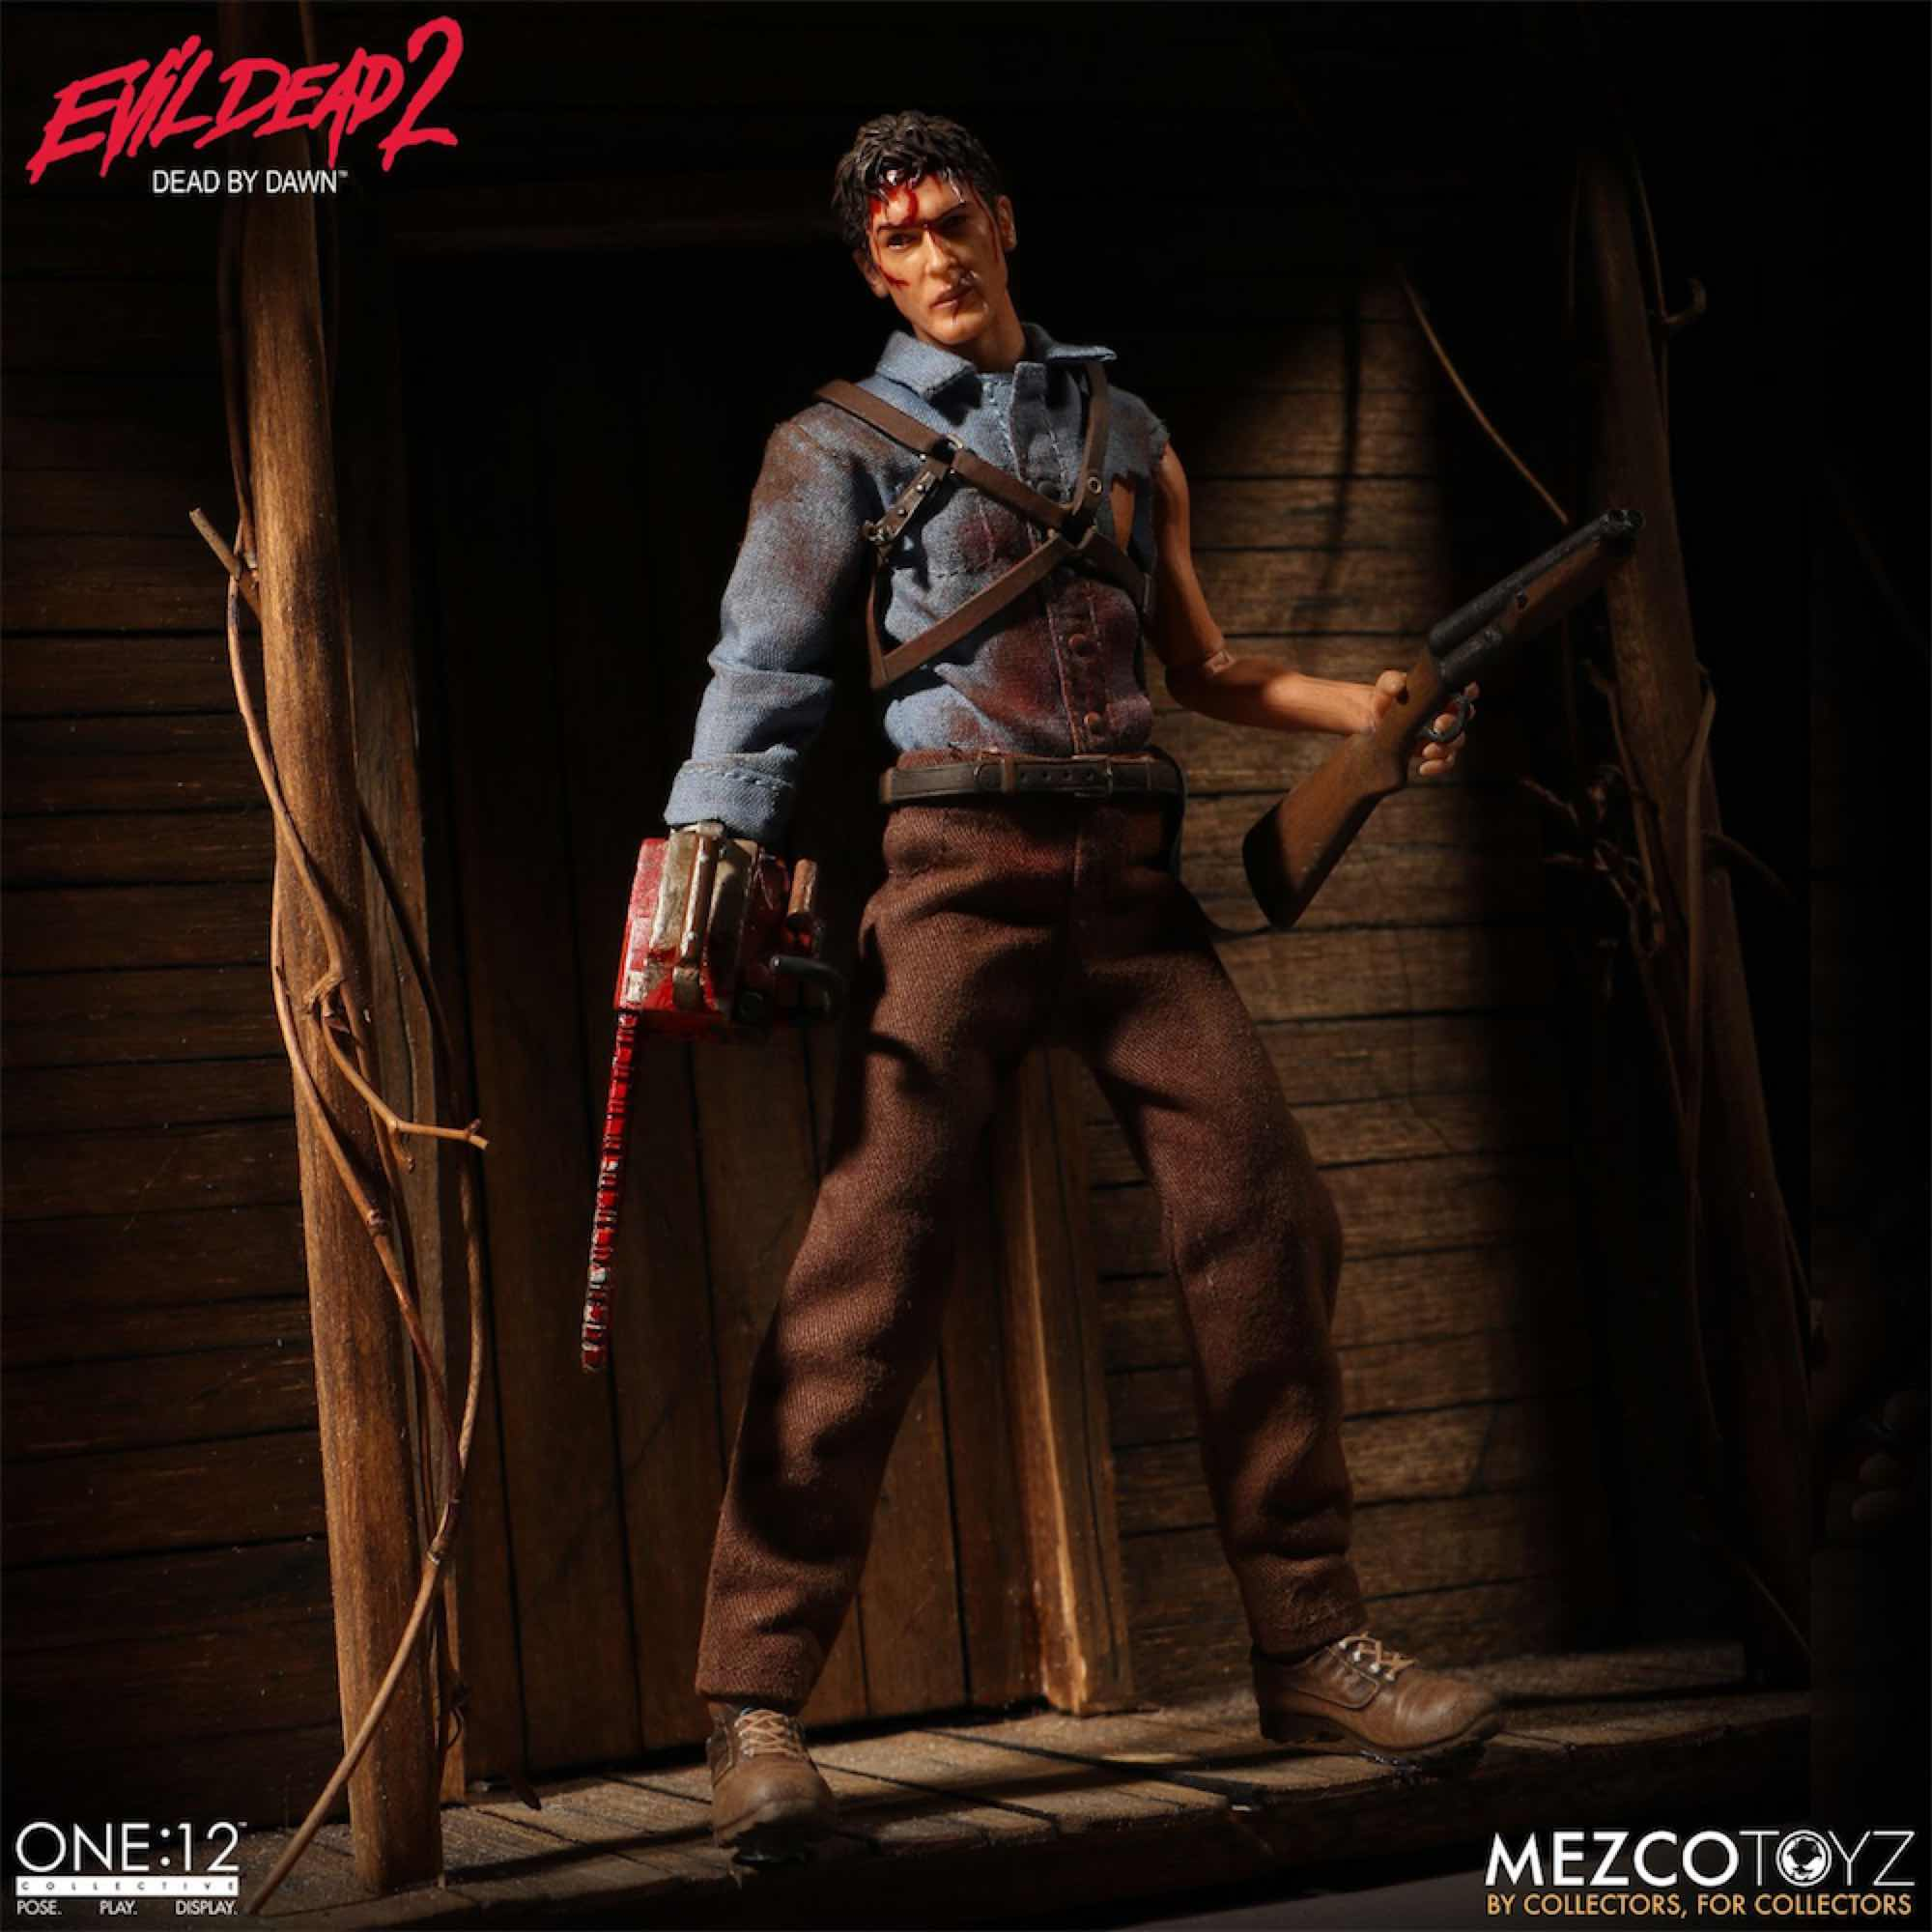 ASH FIGURA 16.5 CM EVIL DEAD 2 ONE: 12 COLLECTIVE